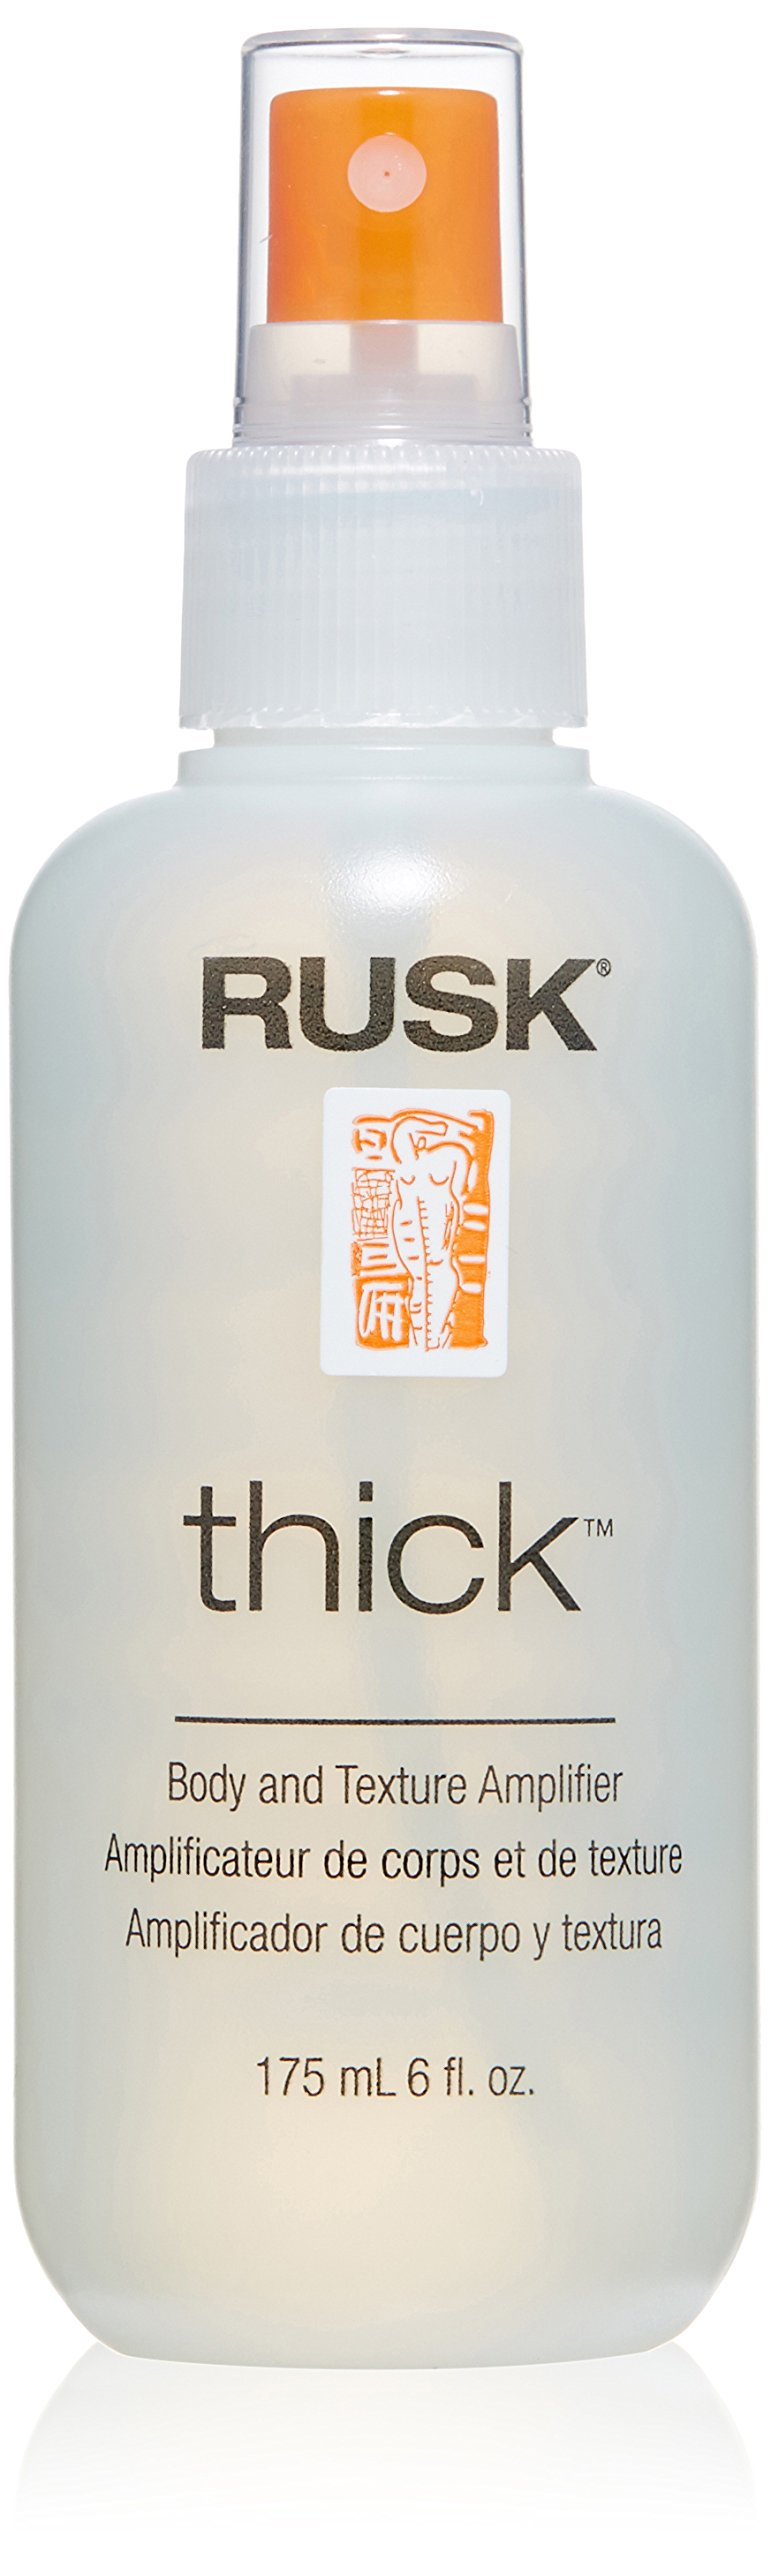 RUSK Designer Collection Thick Body and Texture Amplifier, 6 fl. oz by RUSK